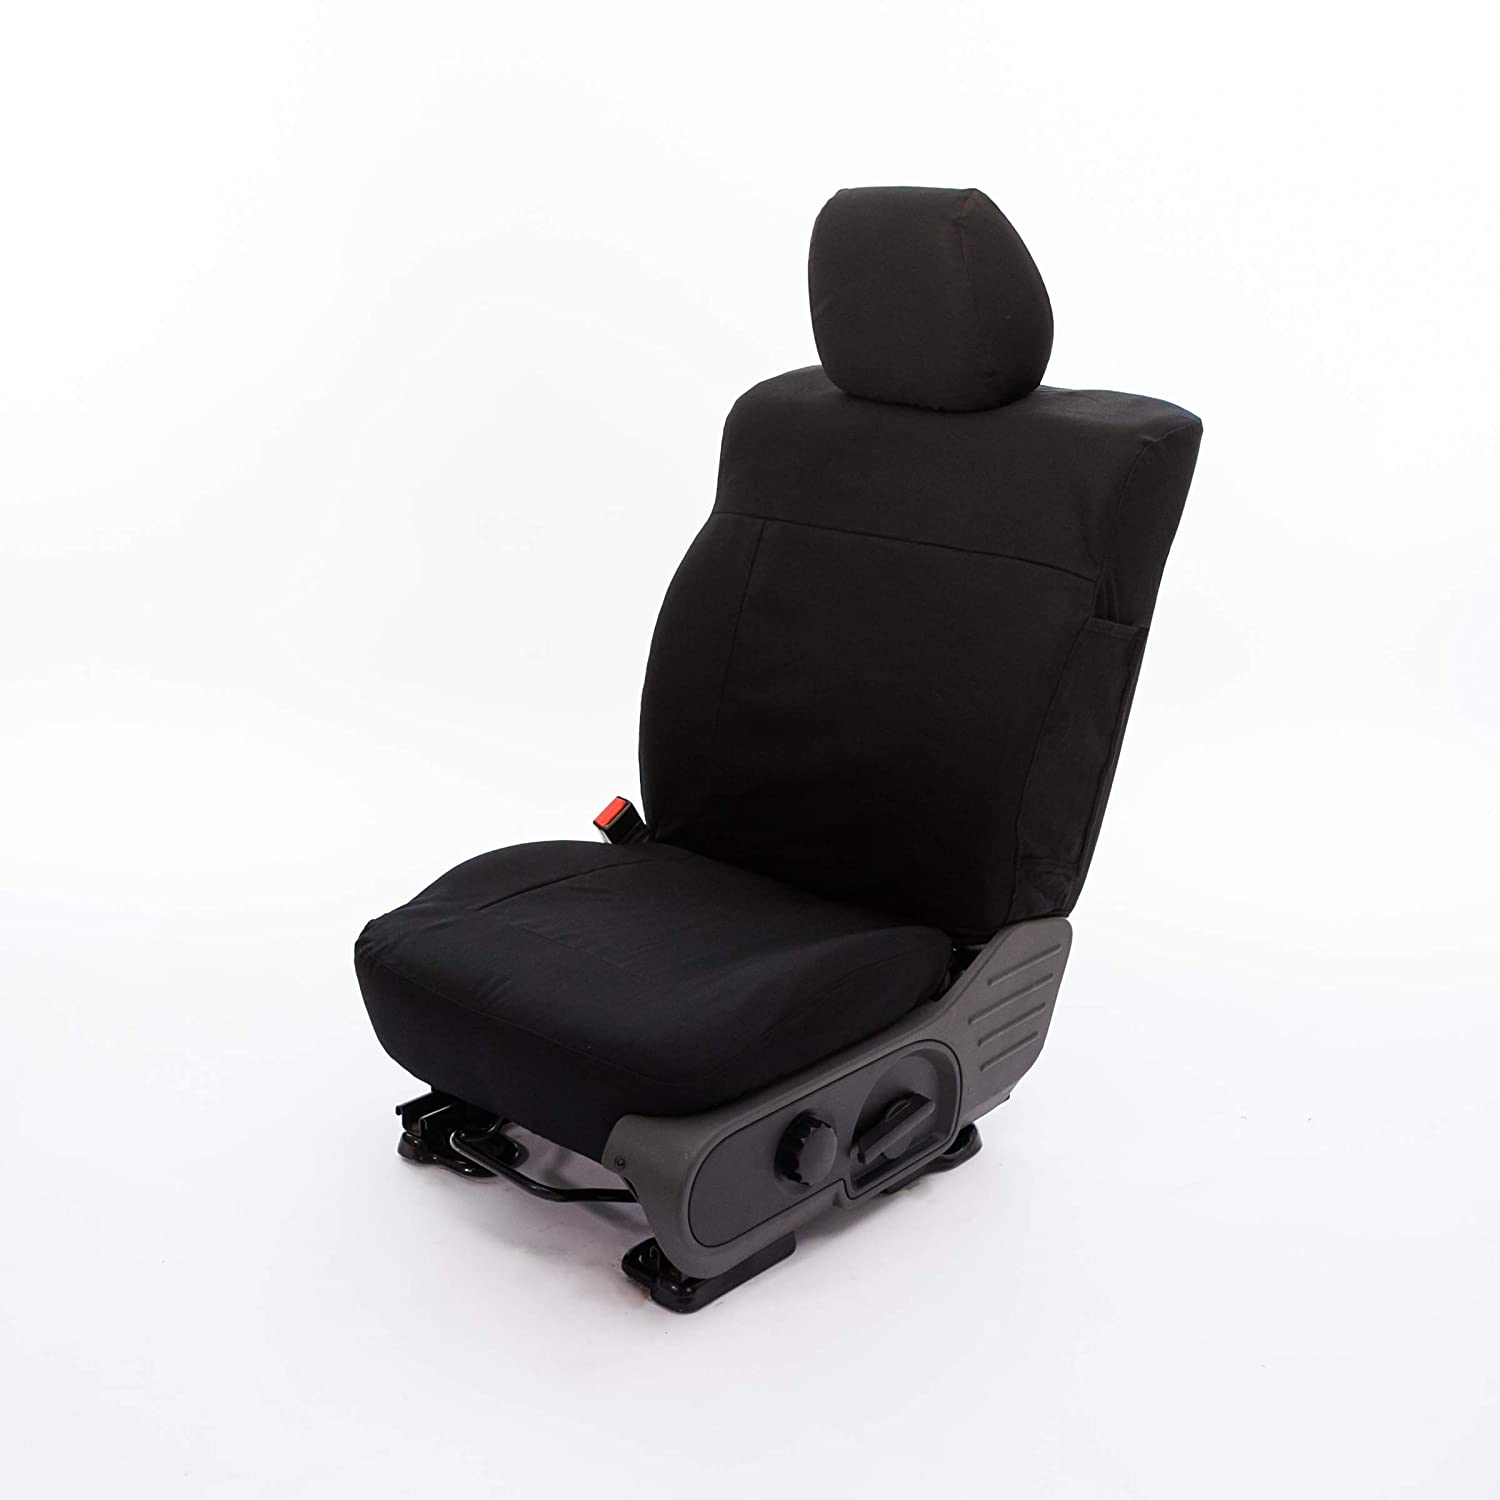 Jeep Saddleman A 049924-81 Charcoal//Black Rugged Canvas Custom Seat Cover Fits